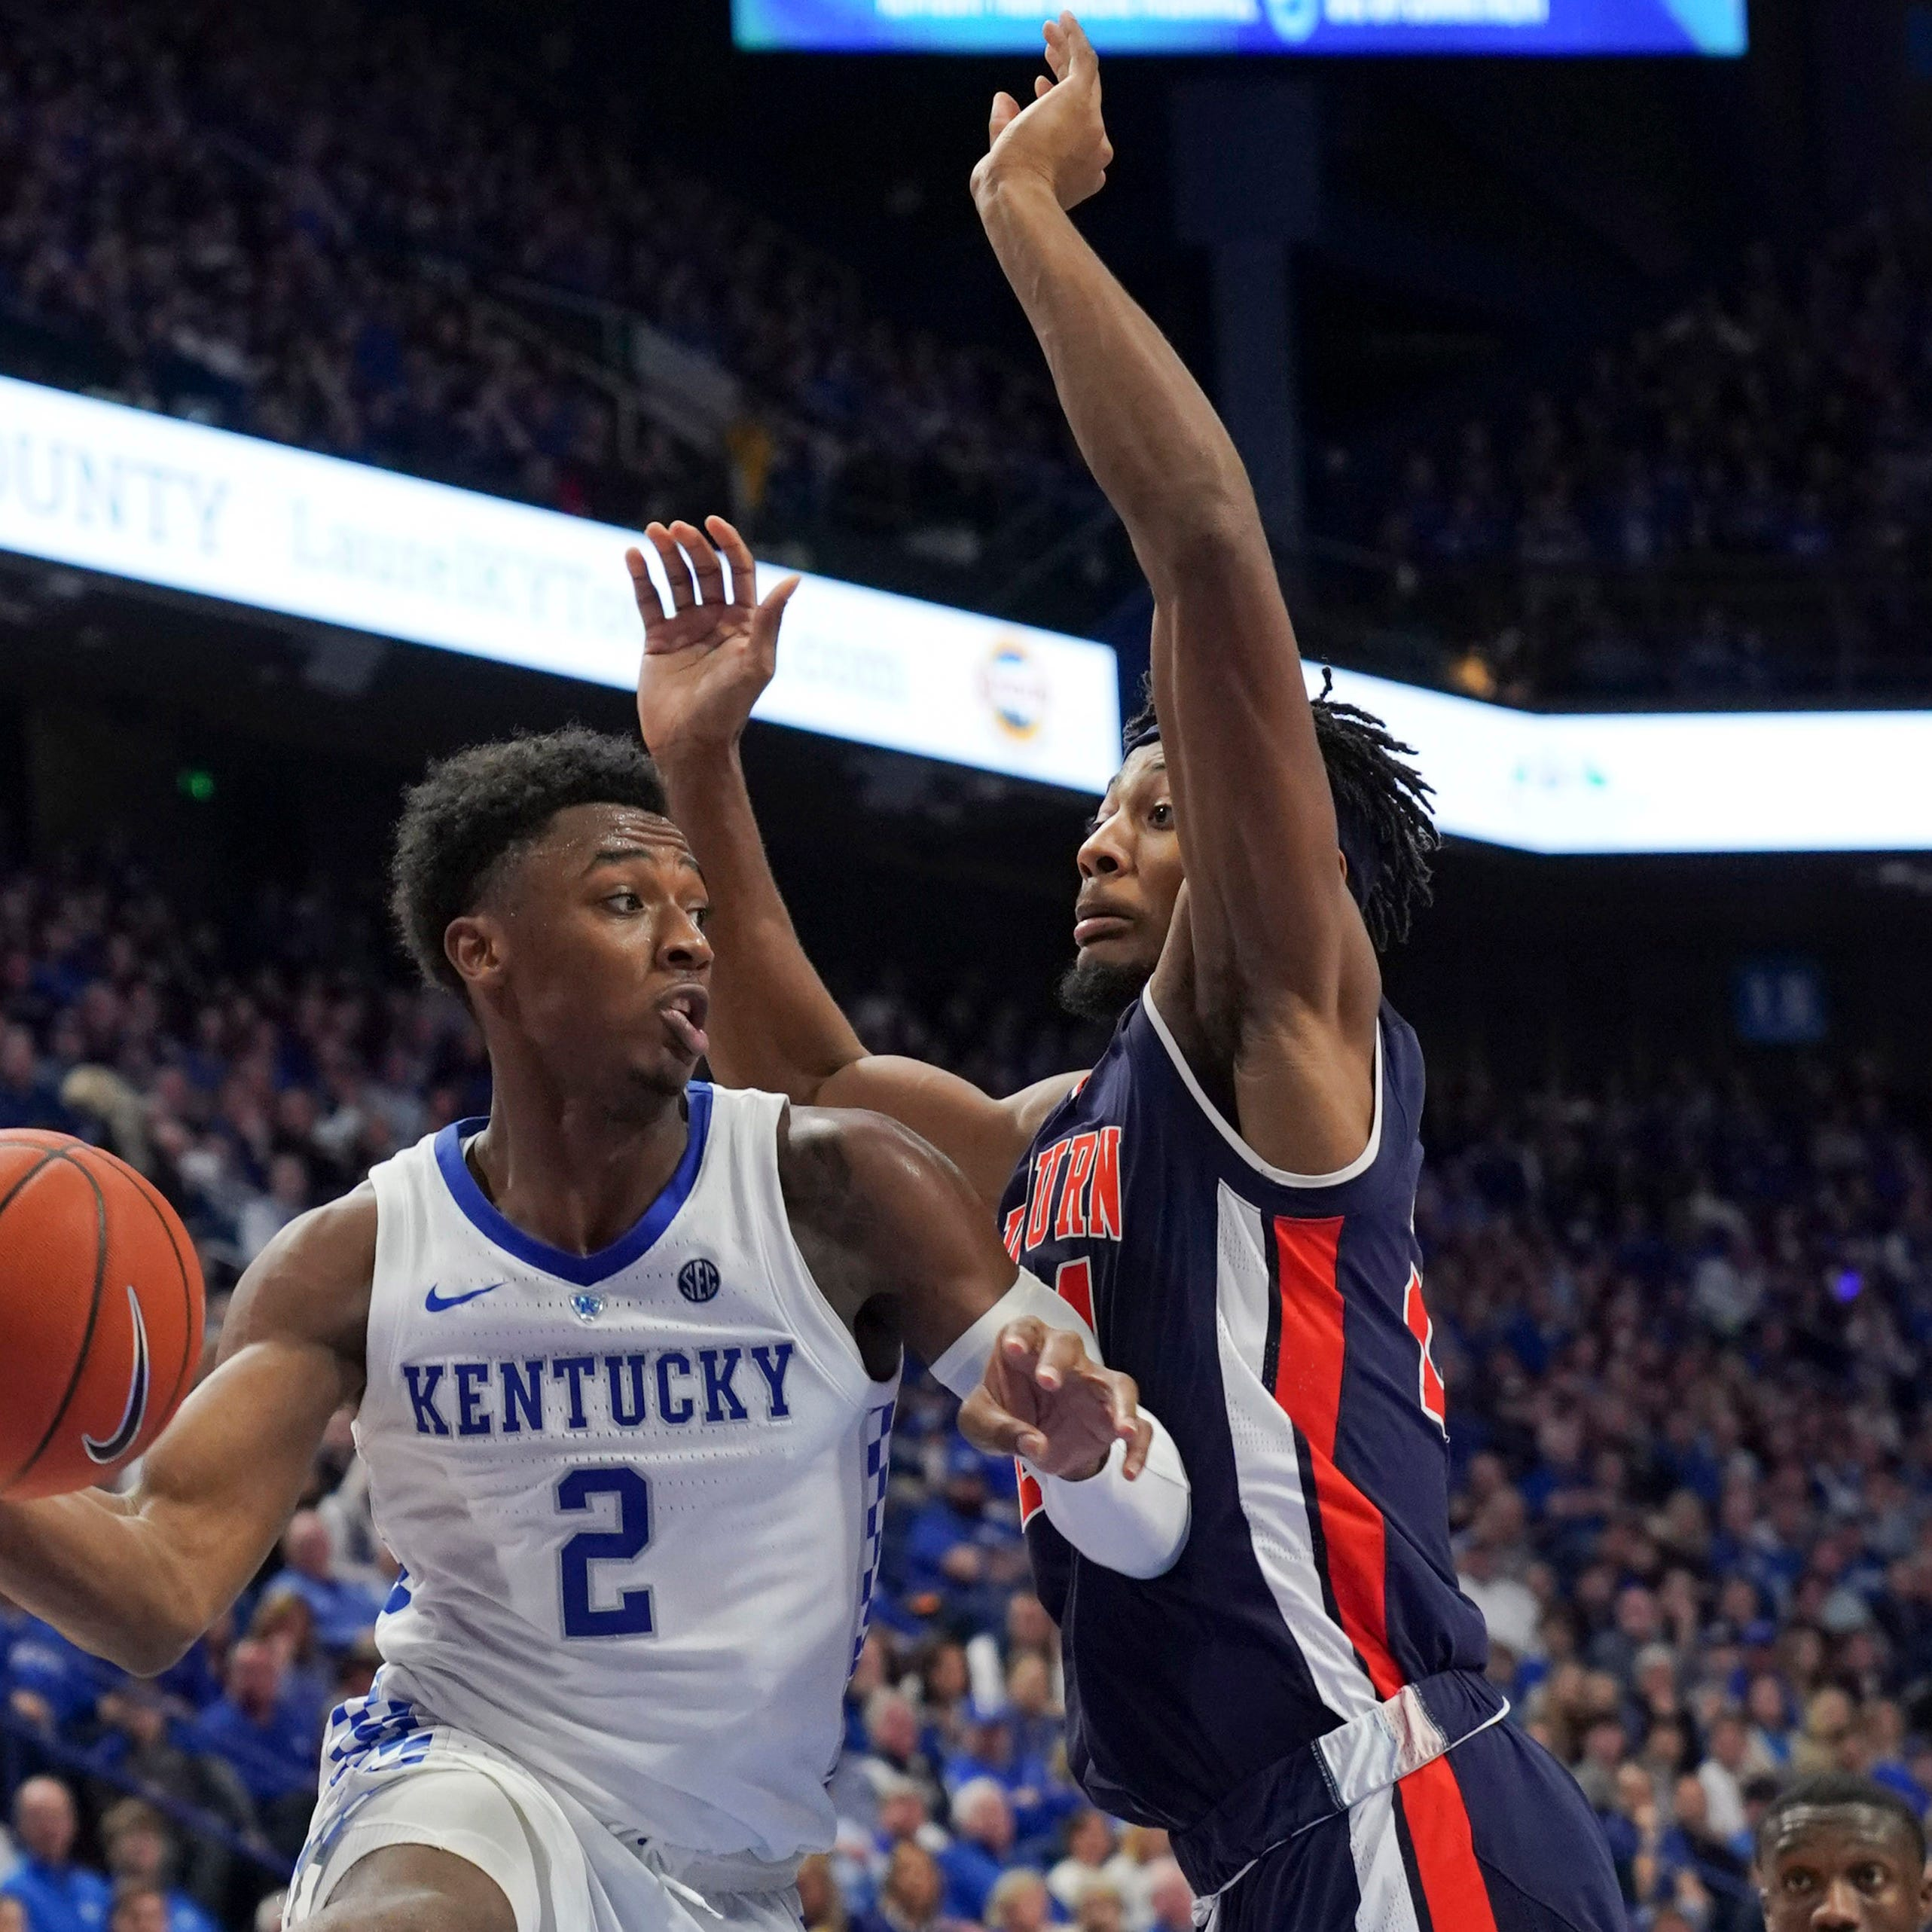 How difficult is it to beat a team three times in a season? Kentucky has done it before